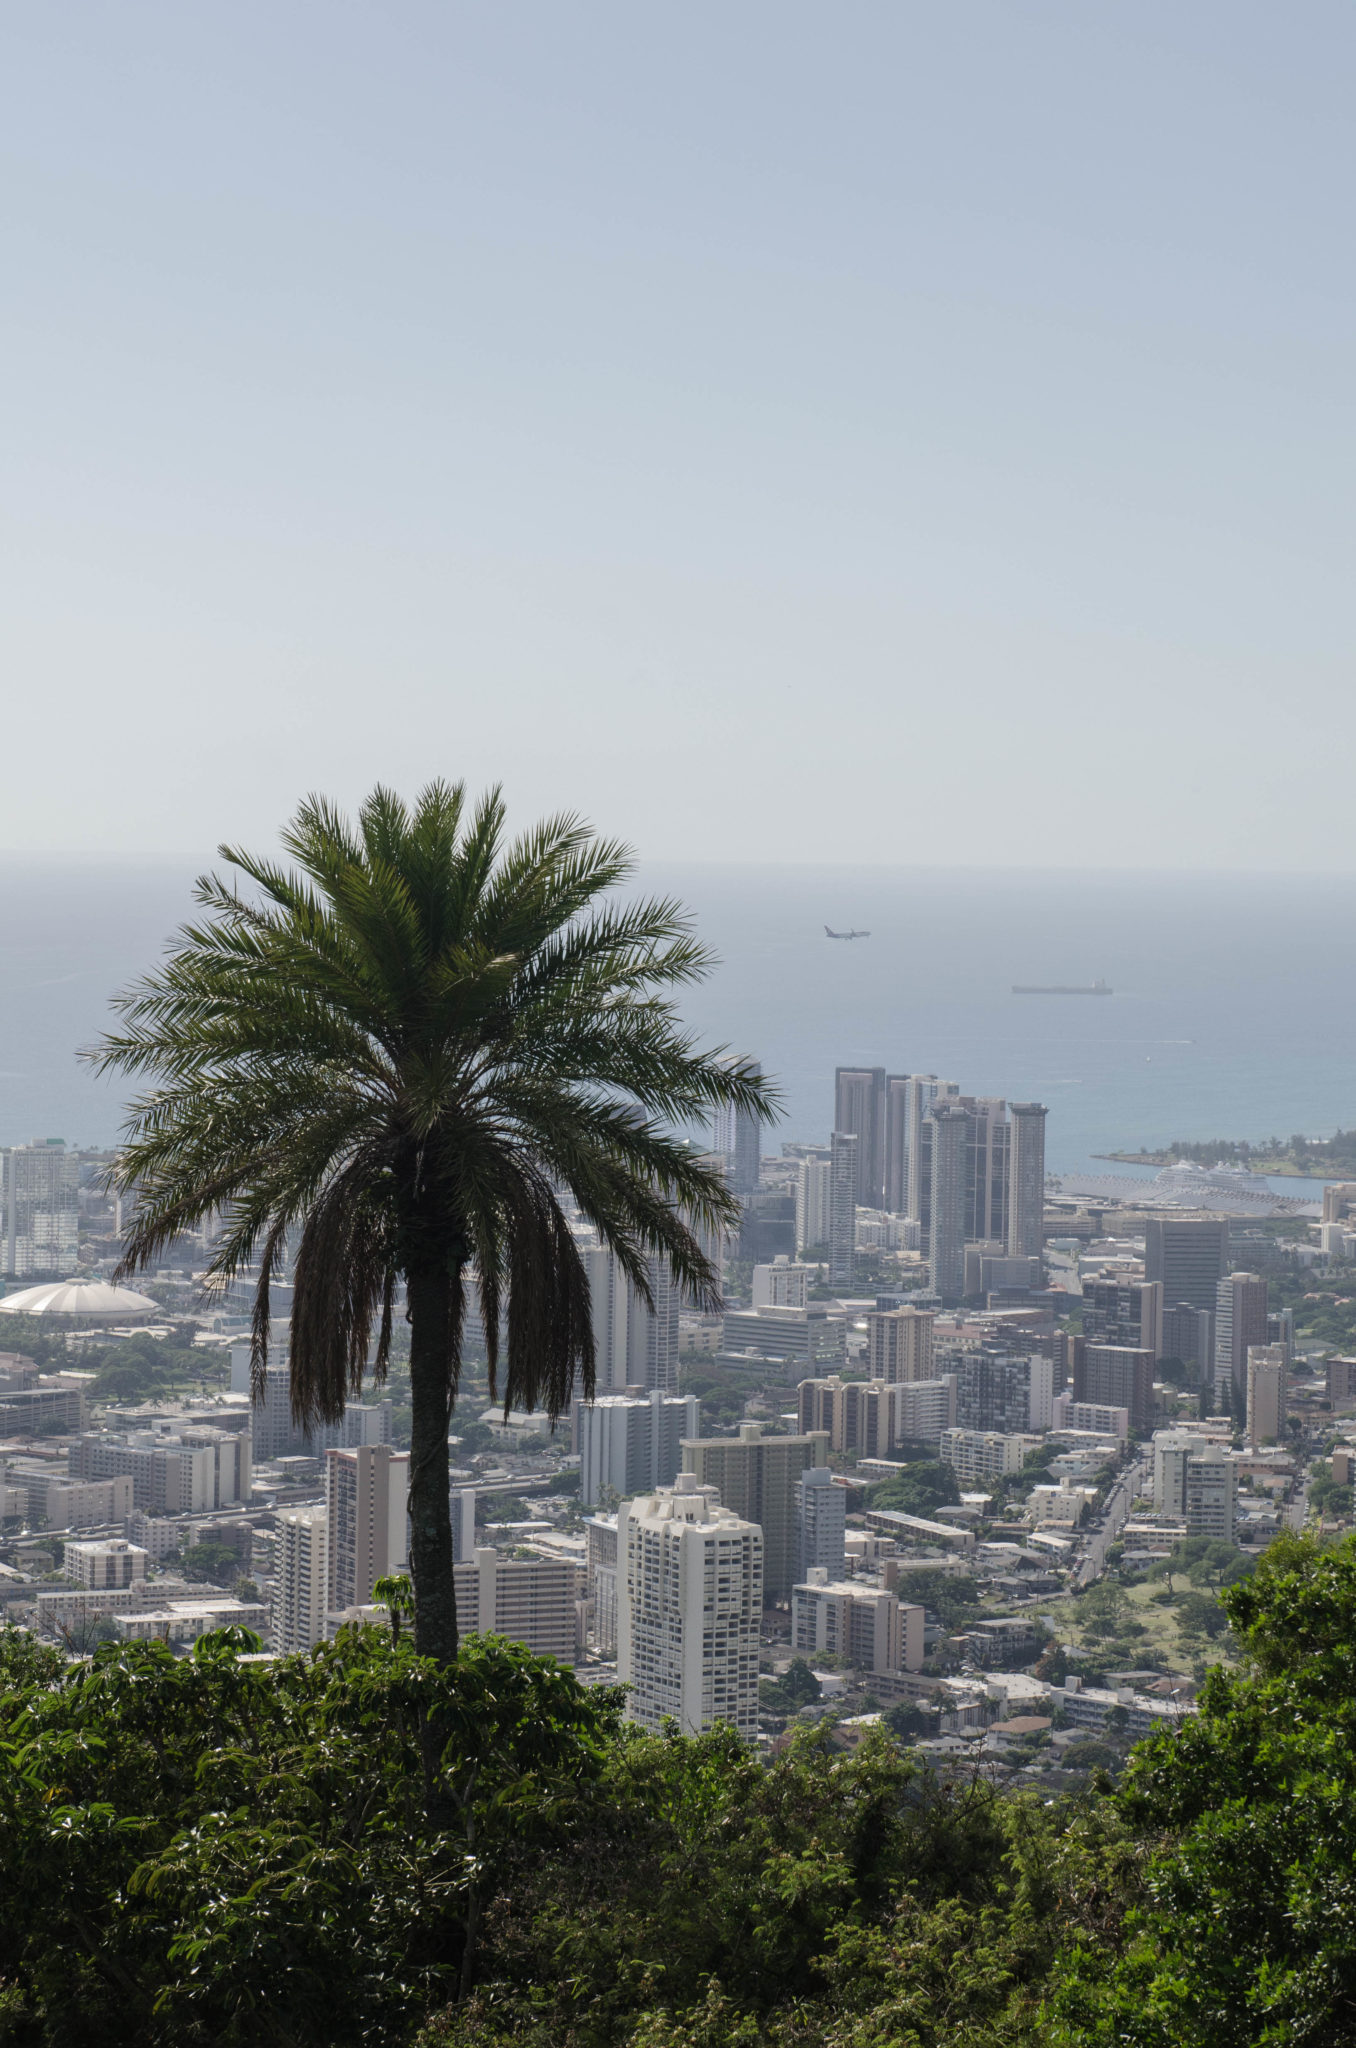 Hawaii Guide: The capital Honolulu is best watched from high up above.